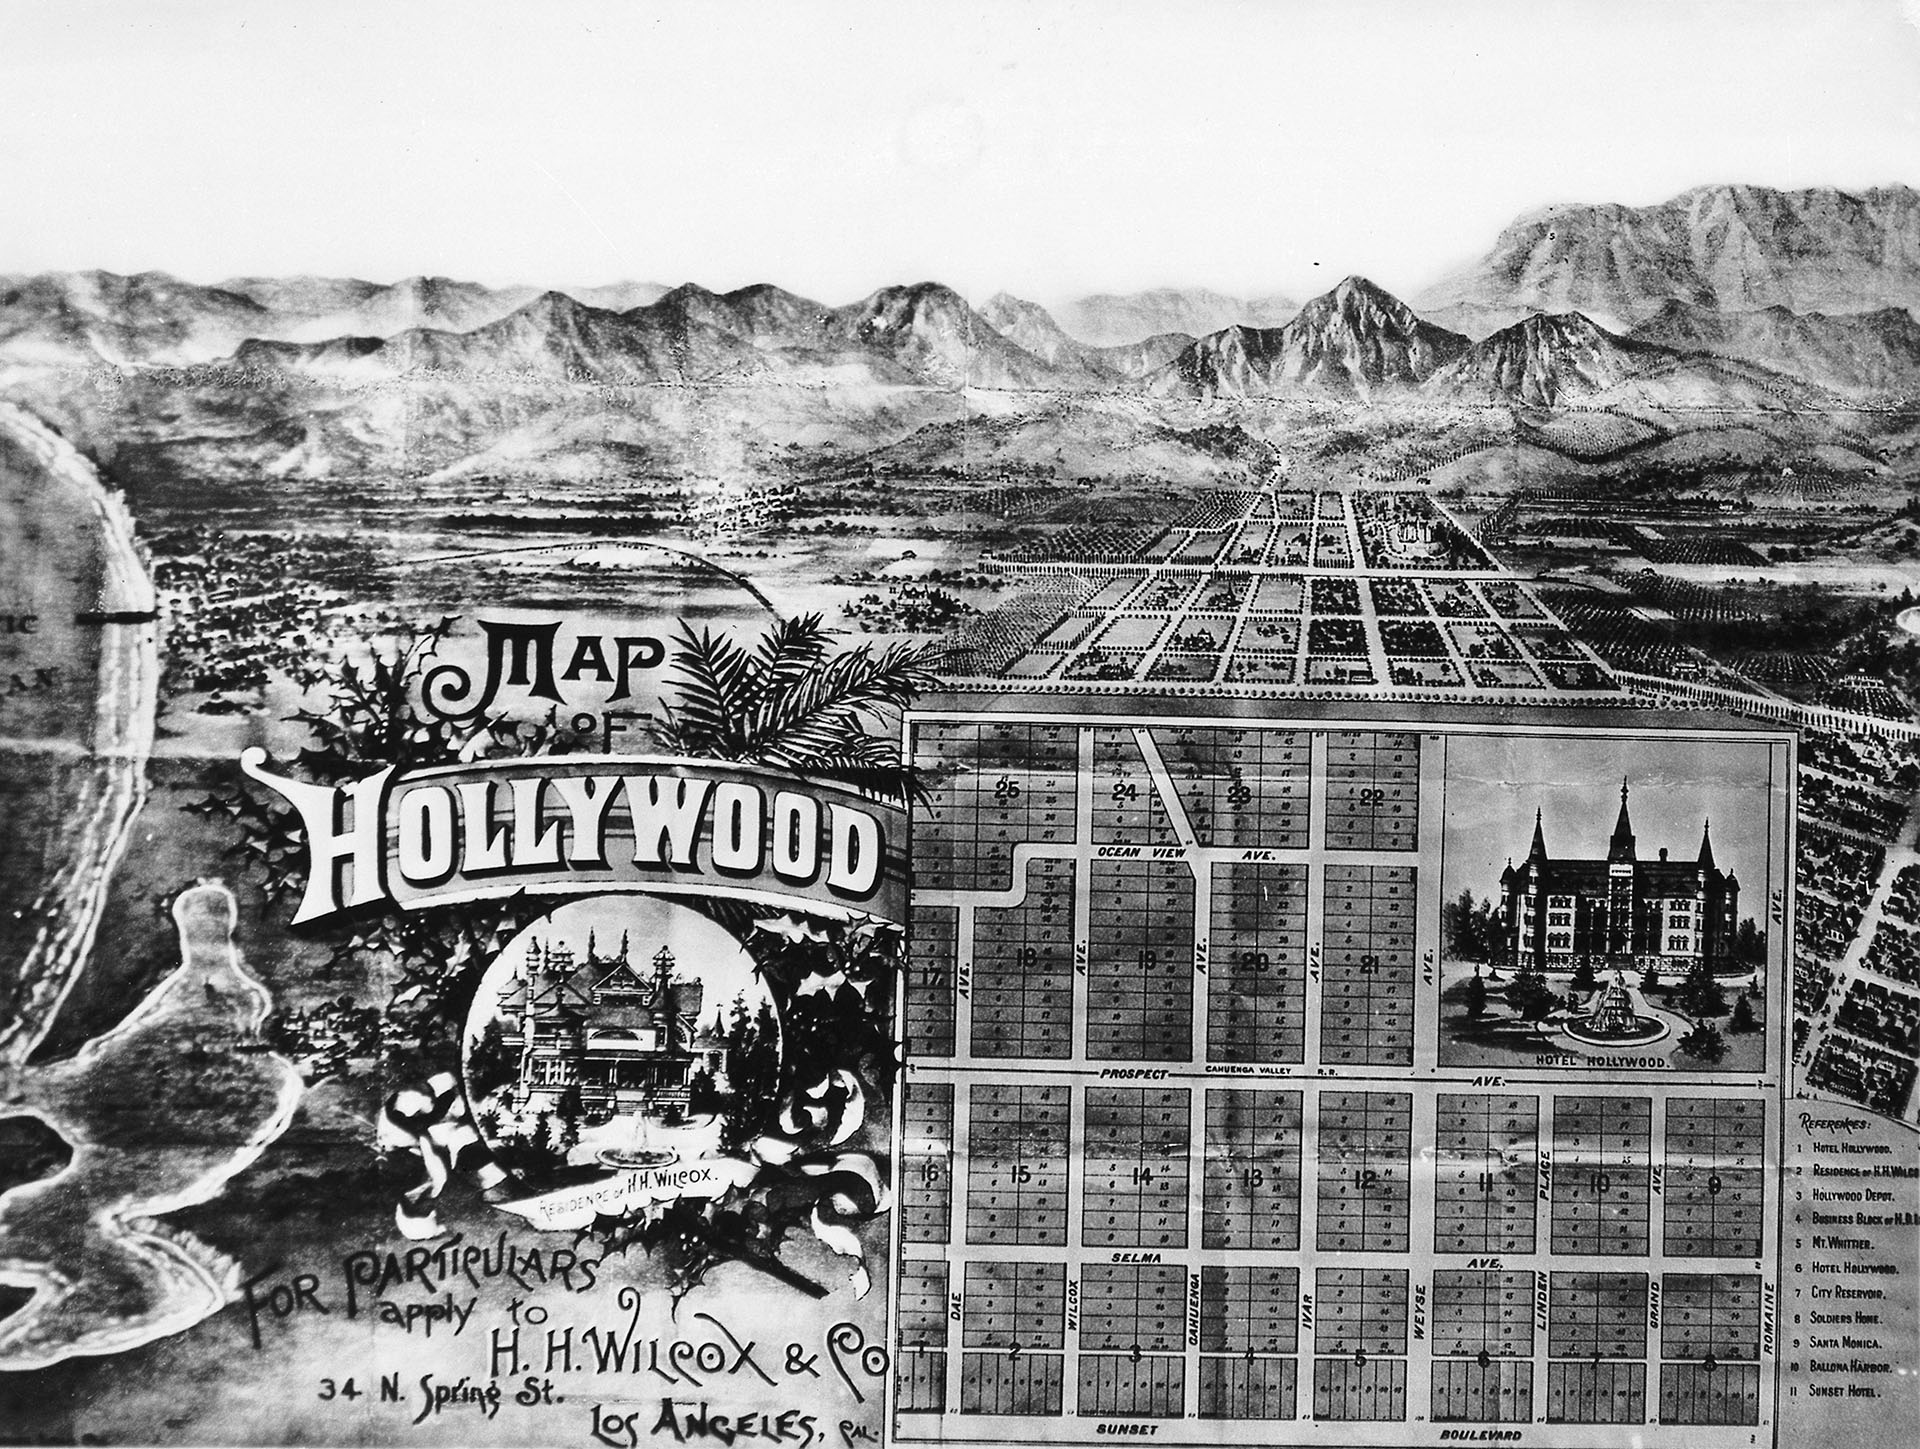 Hollywood real estate map